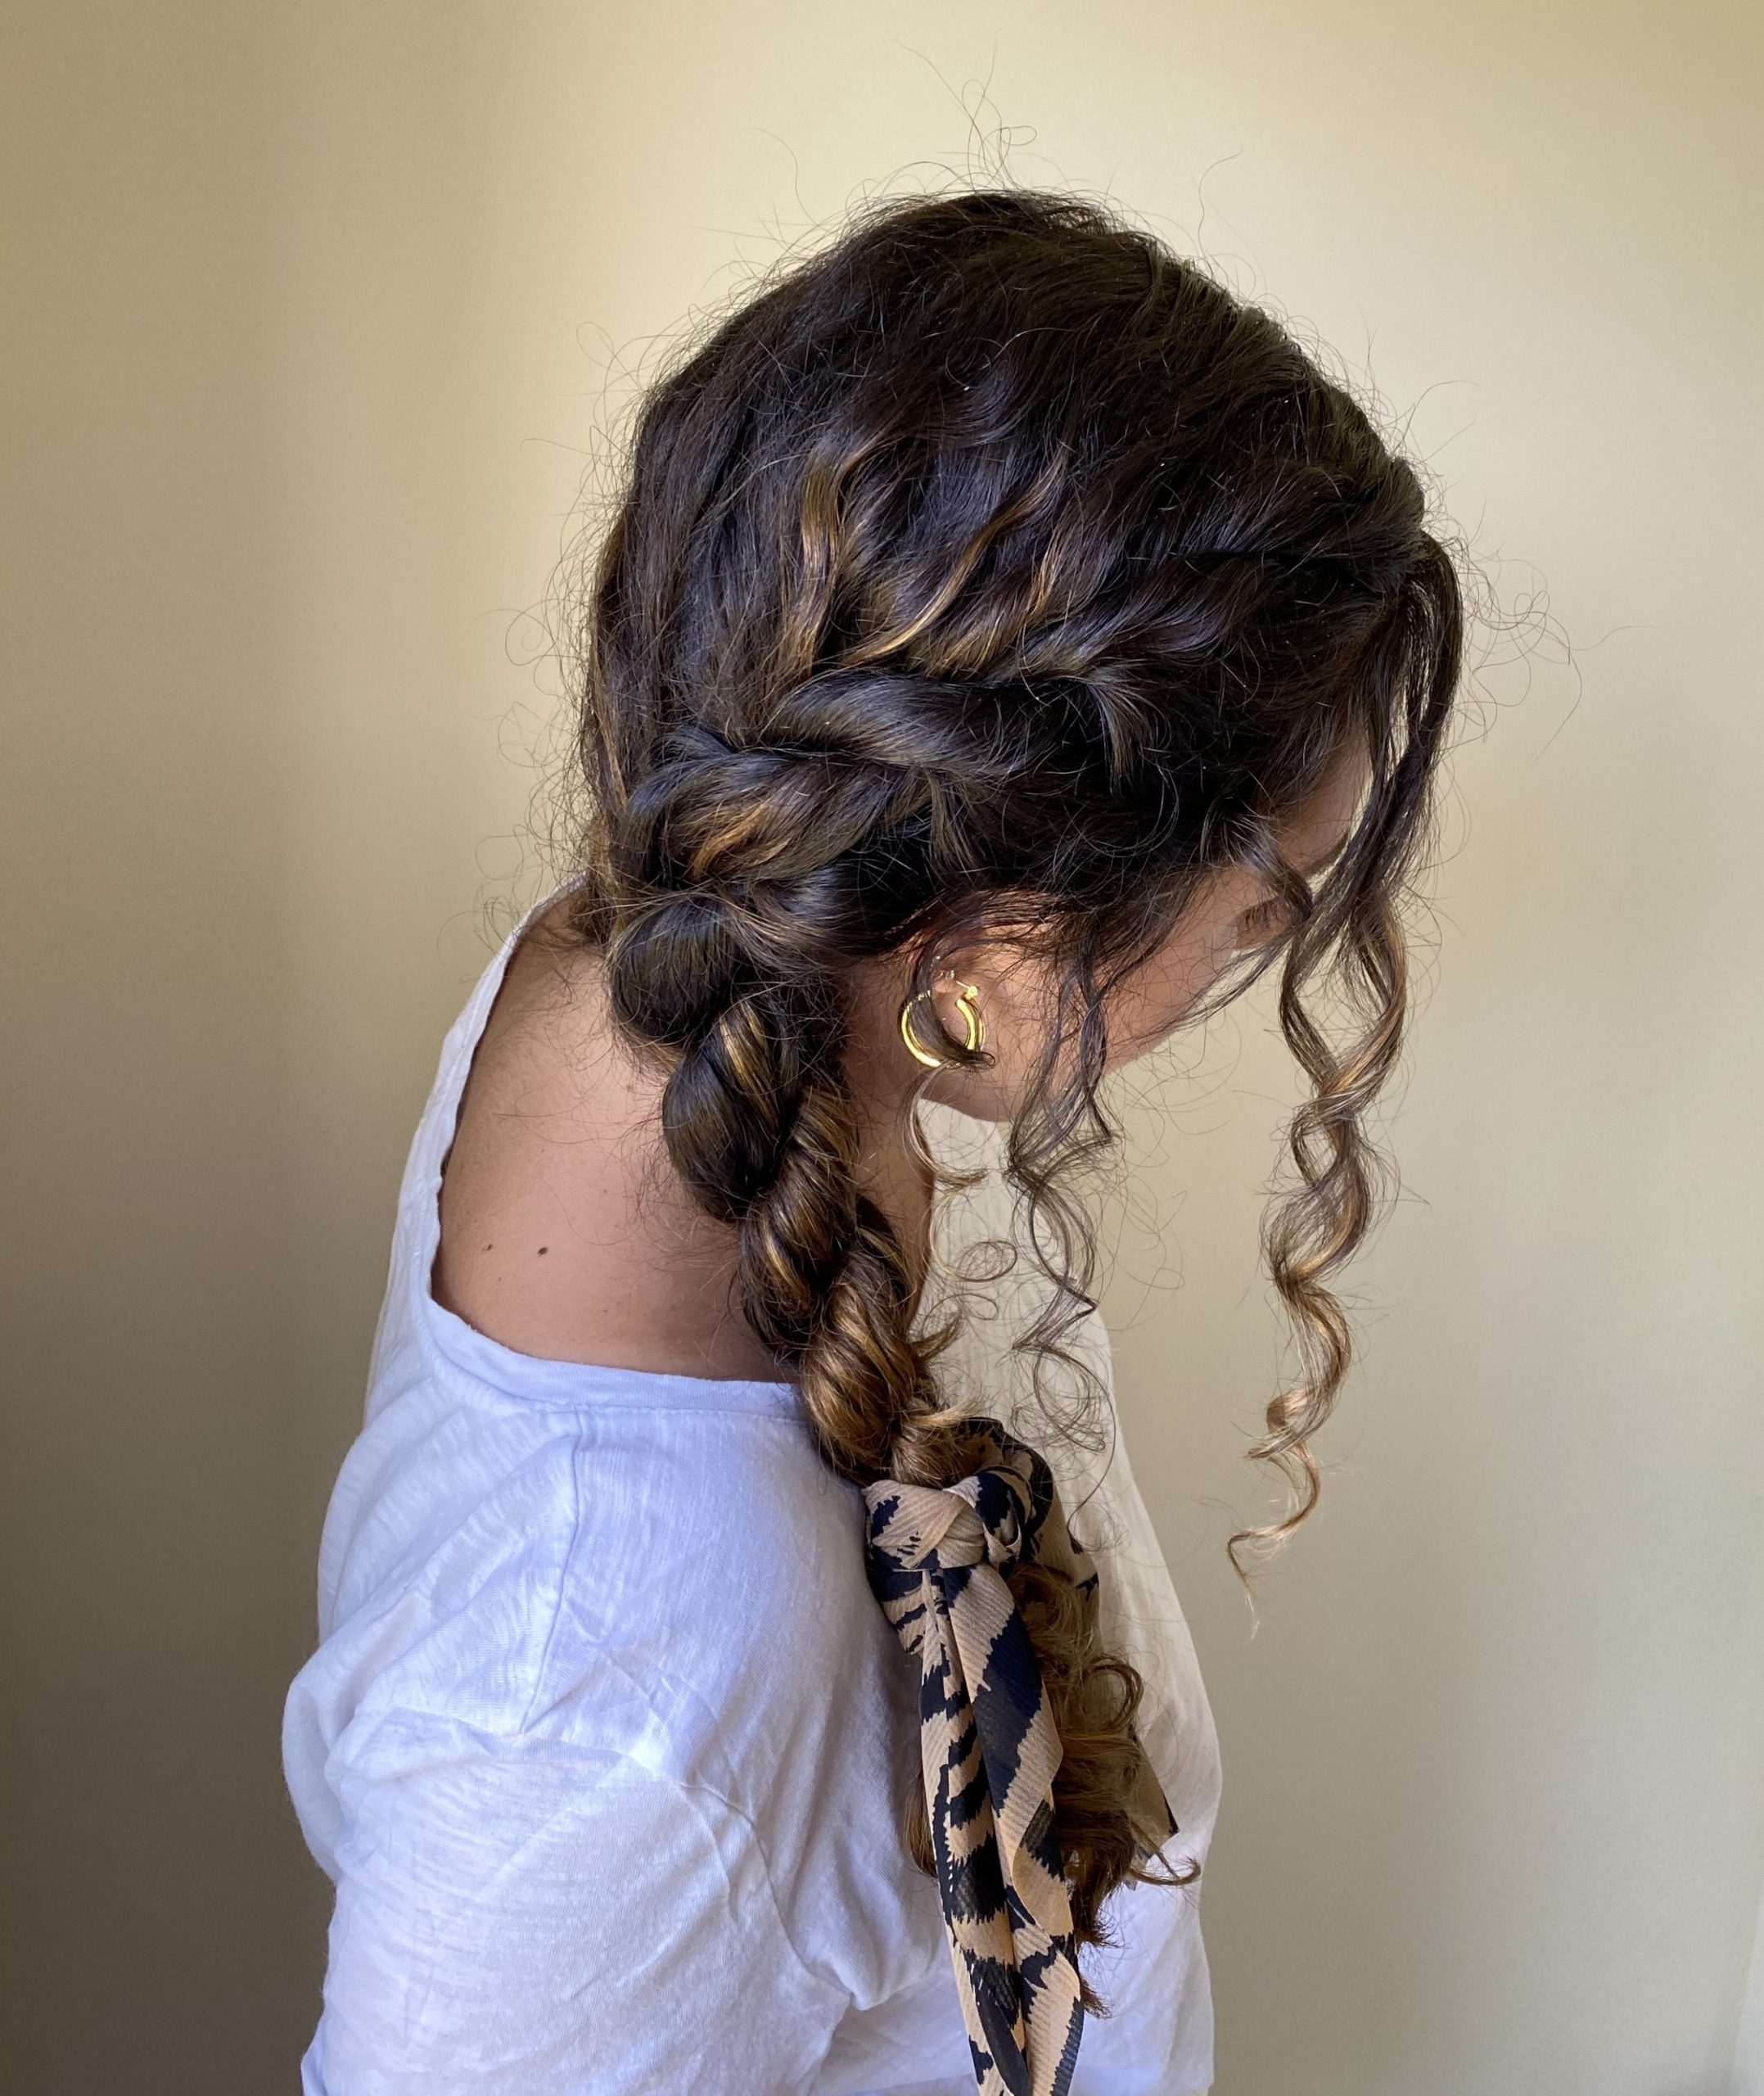 9 Hairstyle, 9 Ways: The Rope Braid  At Length by Prose Hair